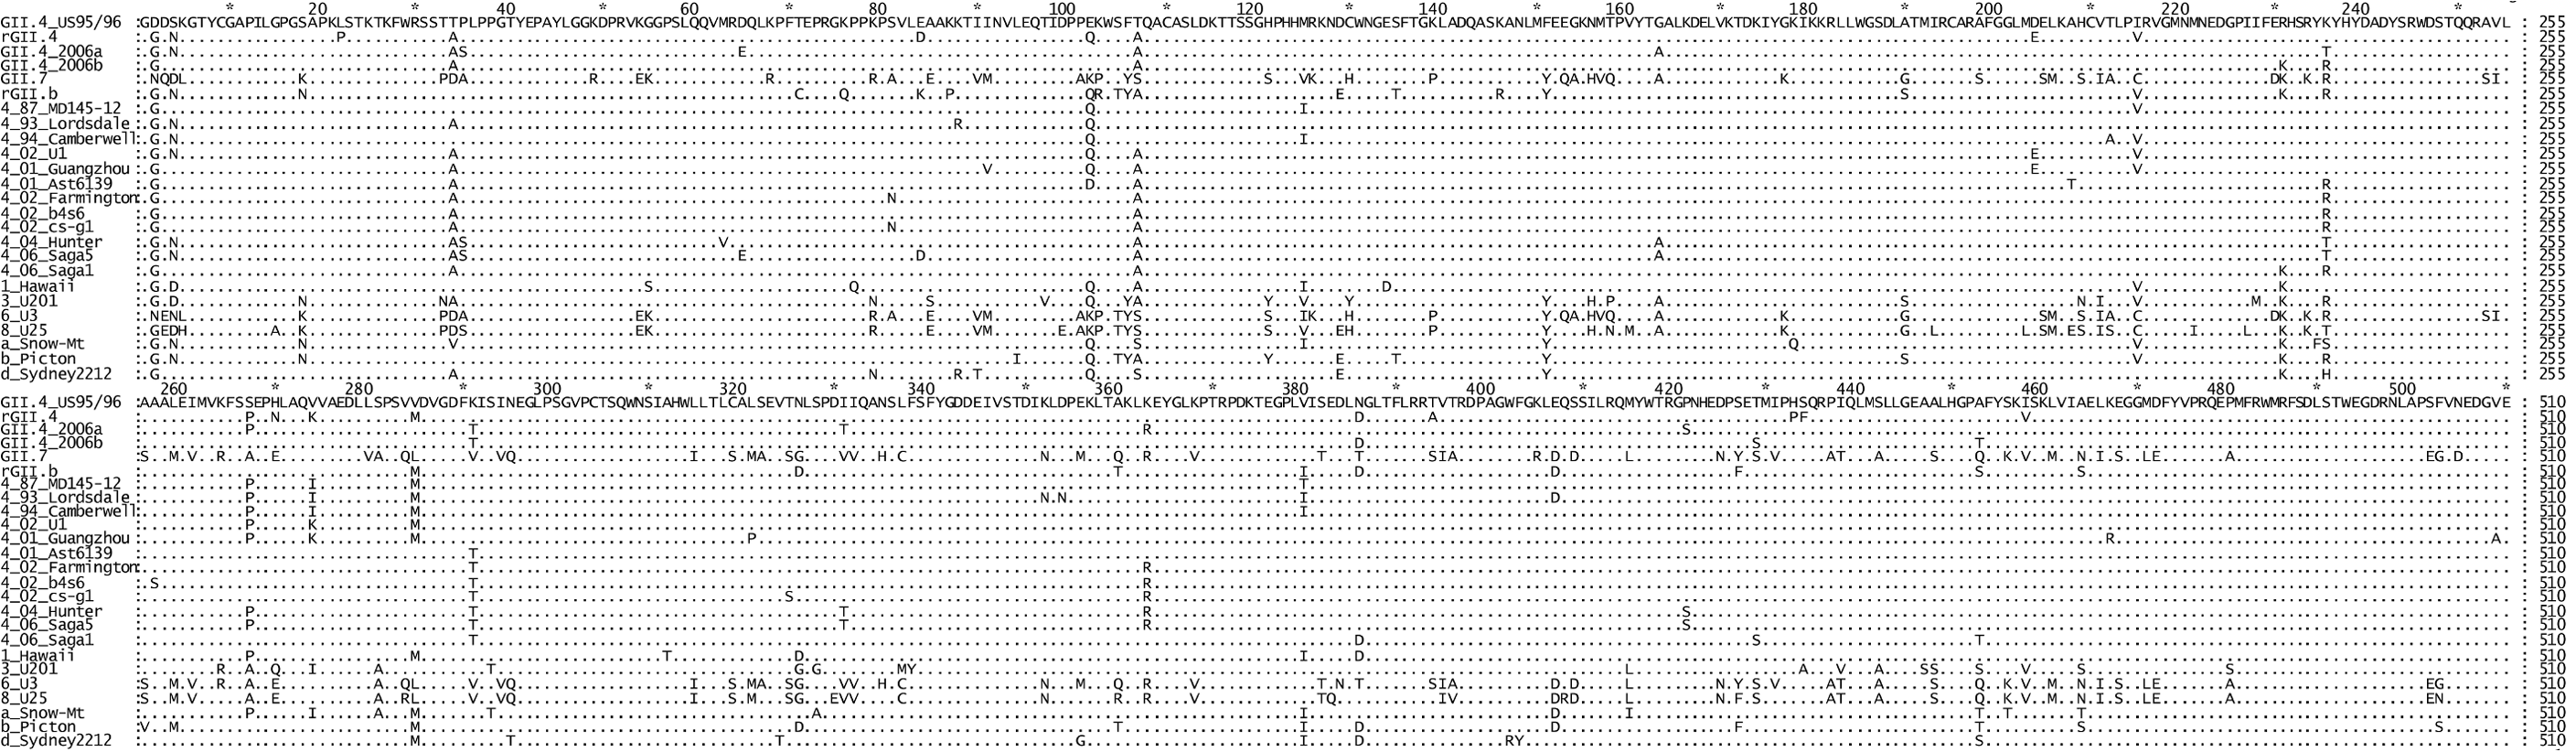 Comparison of the amino acid sequence of the six NoV RdRps used in this study to other representative GII strains.